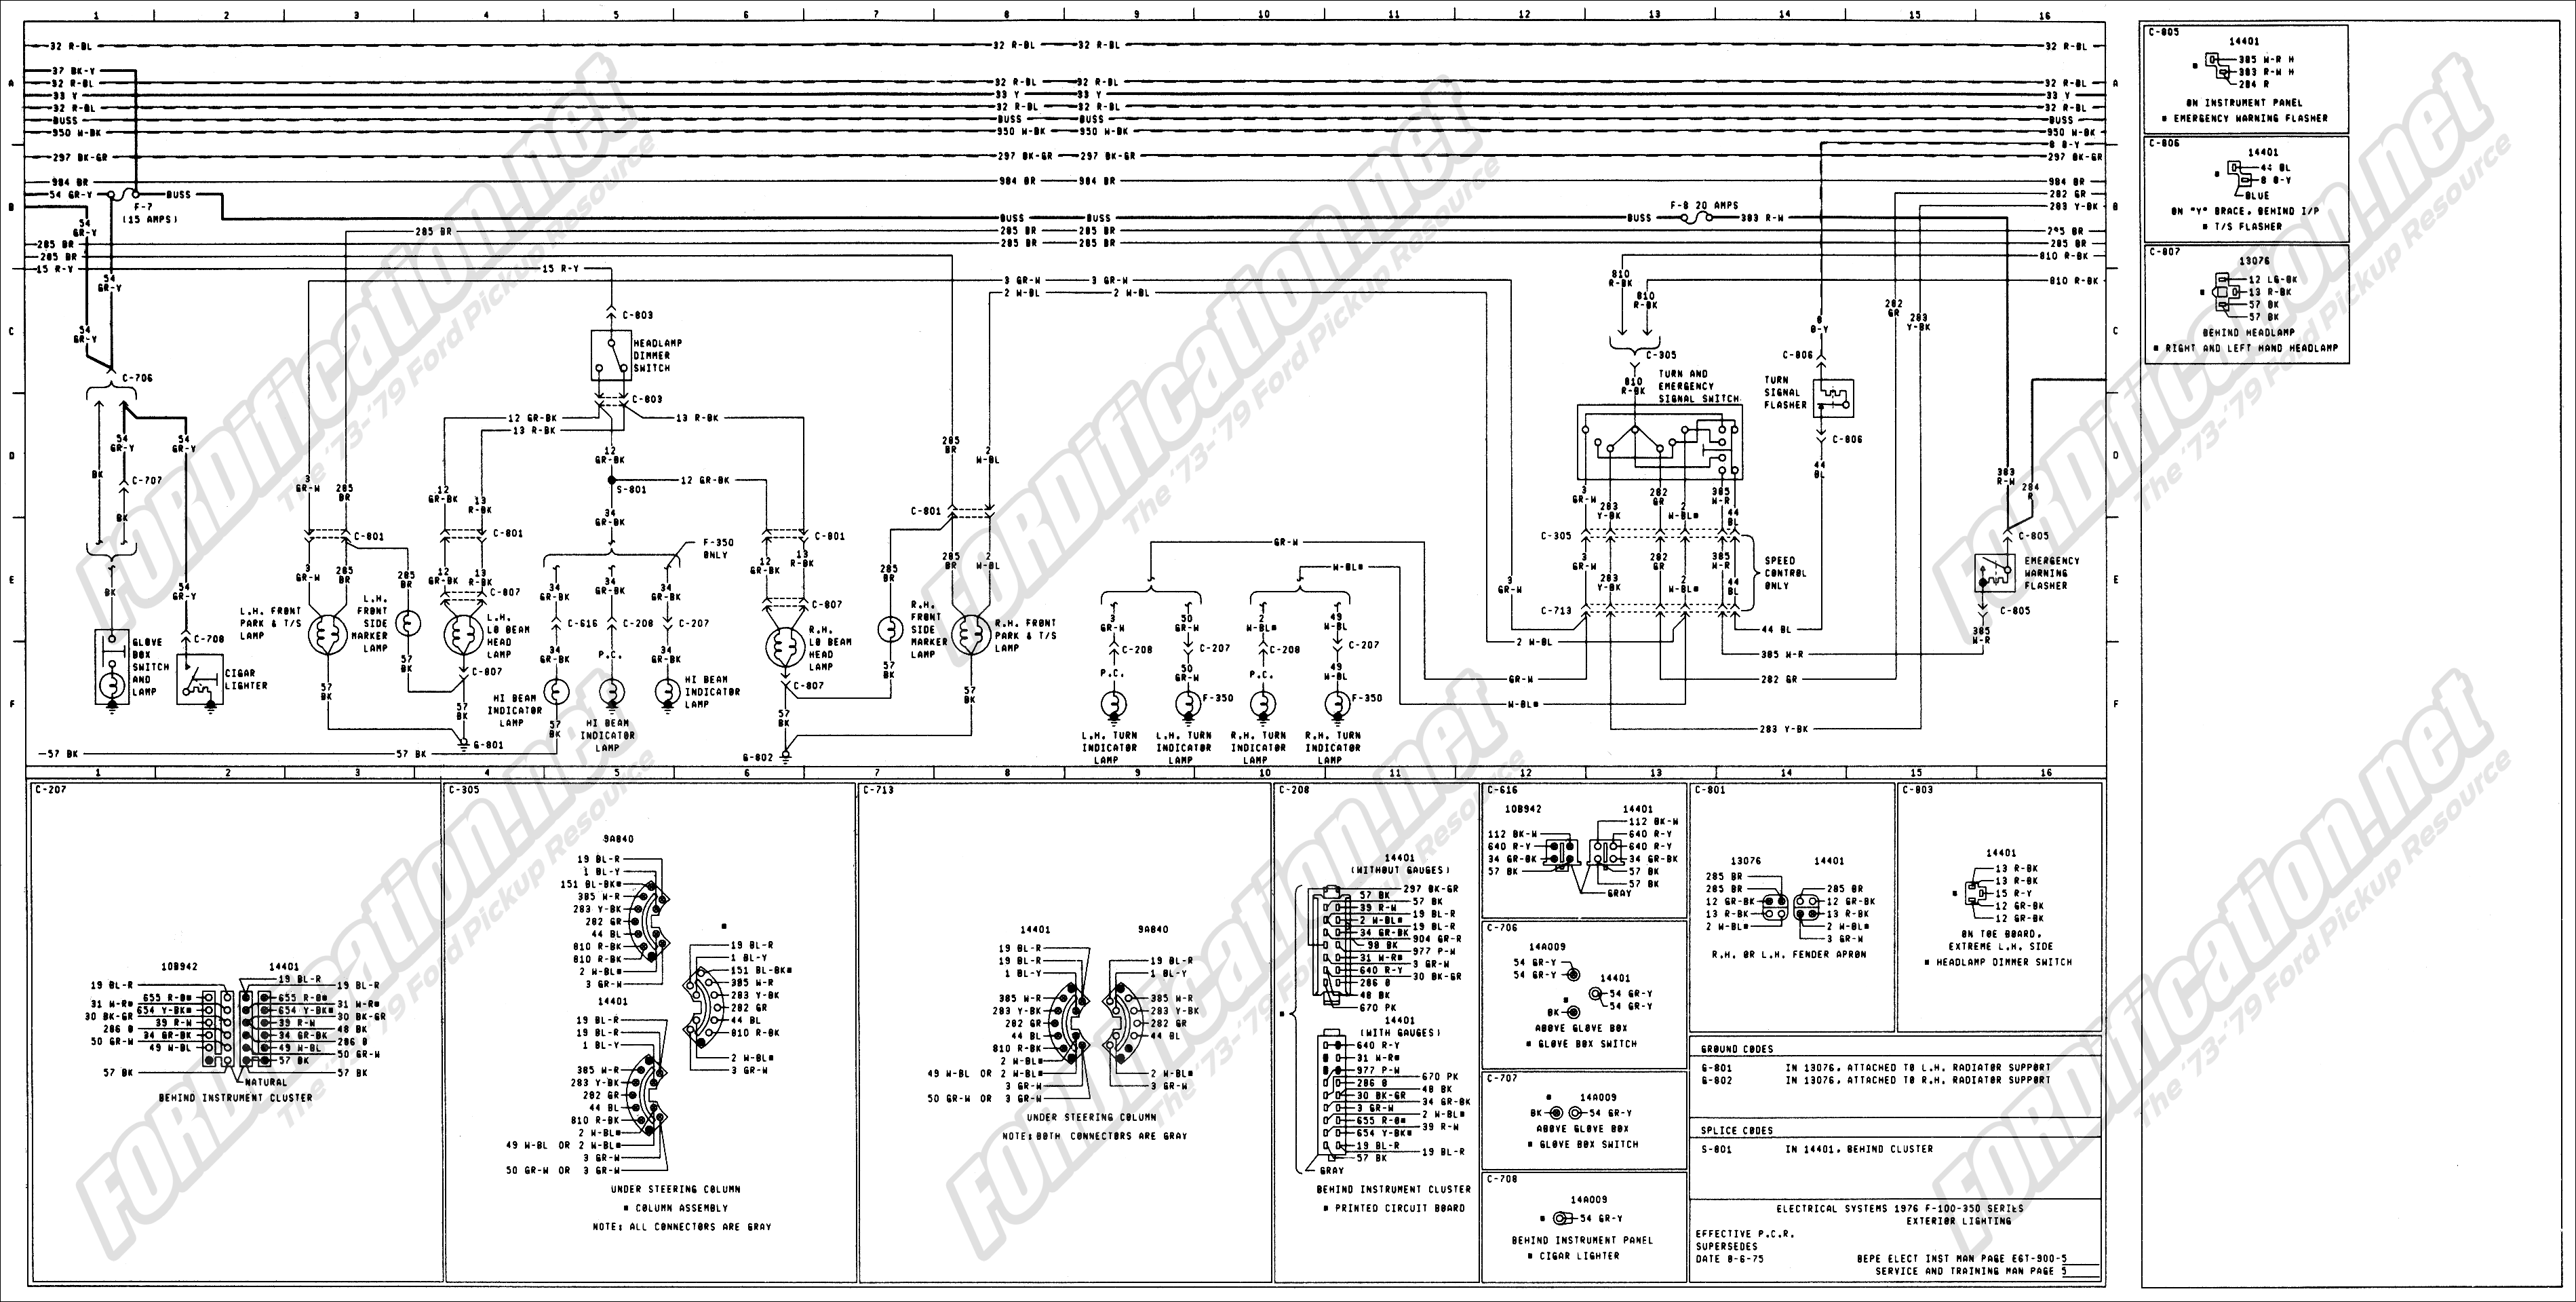 1973 Ford F250 Ignition Switch Wiring Diagram Dodge Charger 1979 Truck Diagrams Schematics Fordification Net Rh 1974 F 250